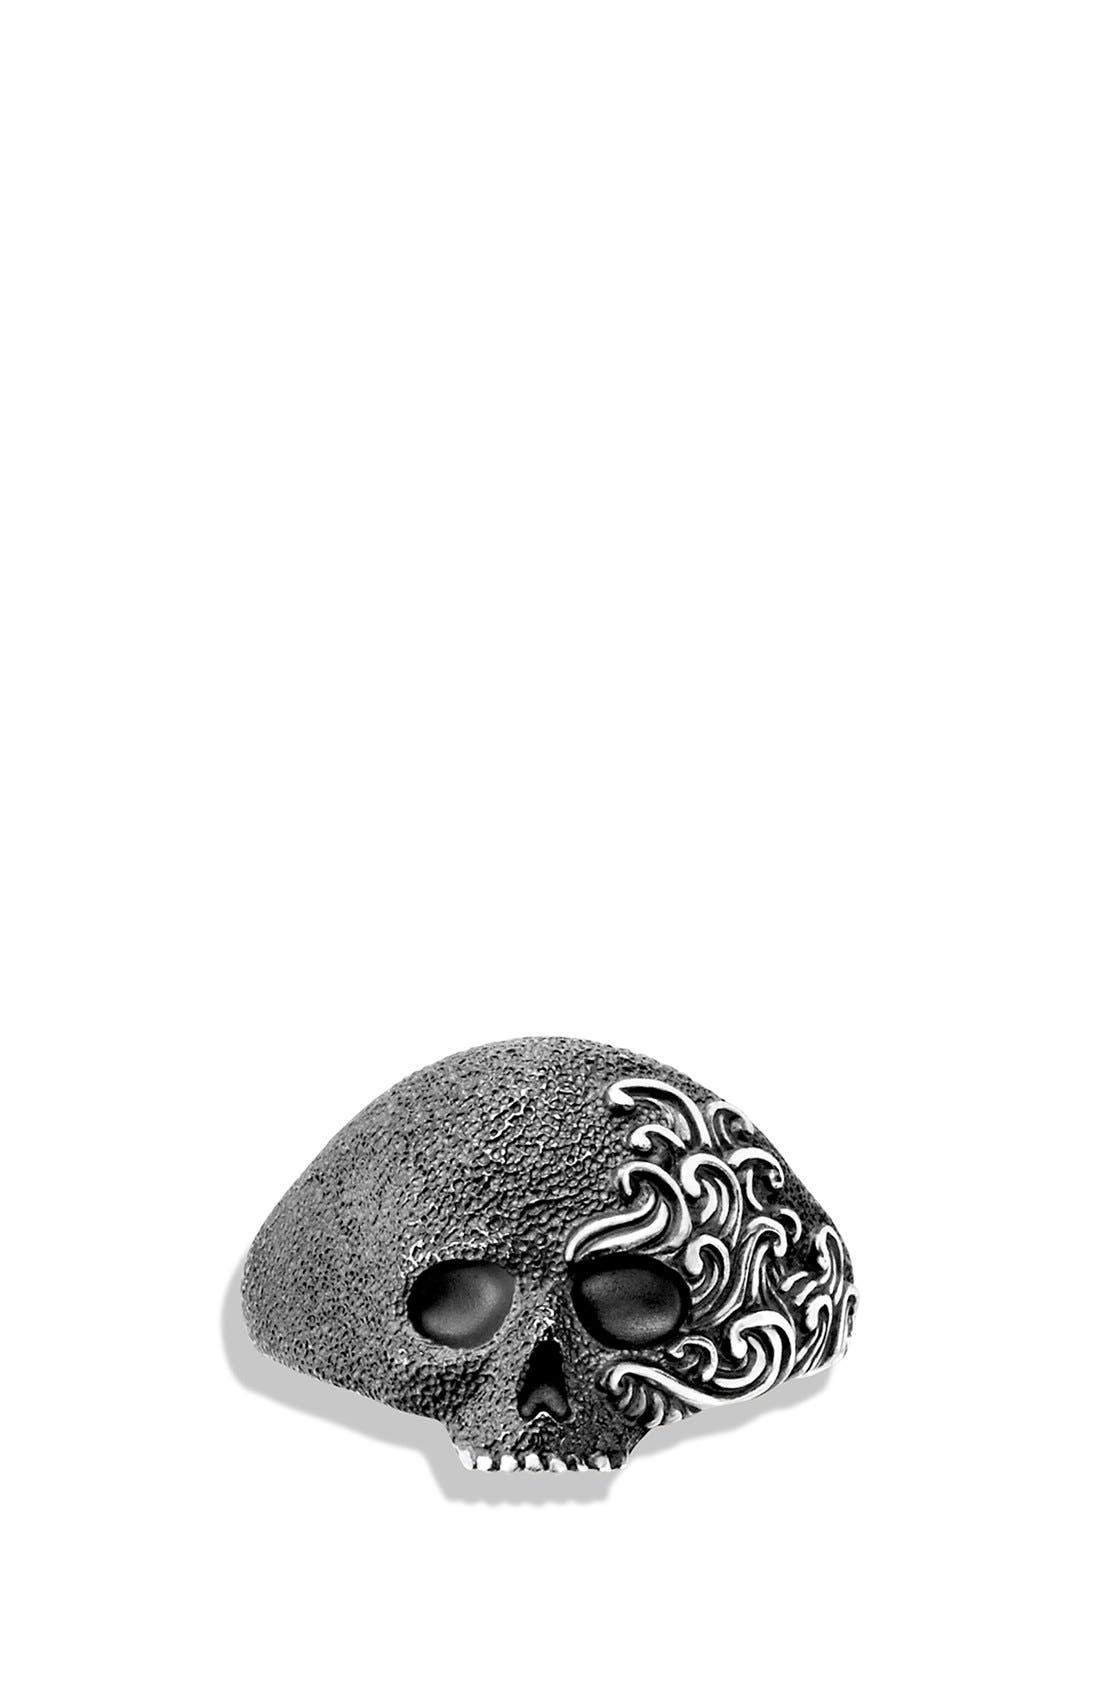 'Waves' Small Skull Ring,                             Alternate thumbnail 4, color,                             040